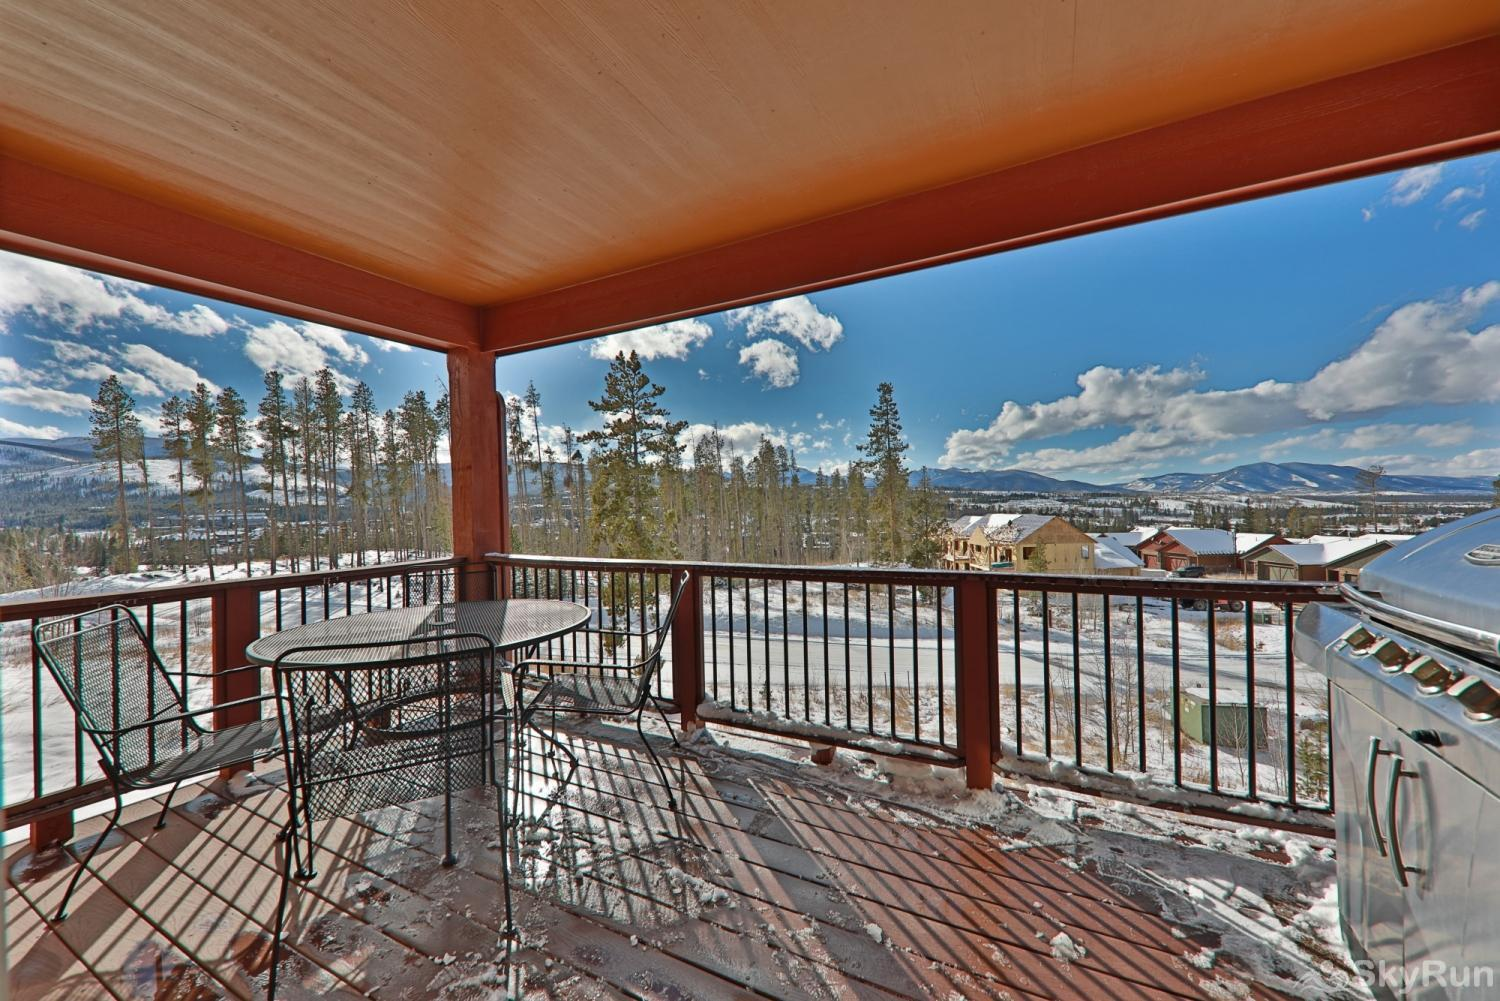 Rendezvous Discovery 3 BR Private Deck with Grill and View on Main Level